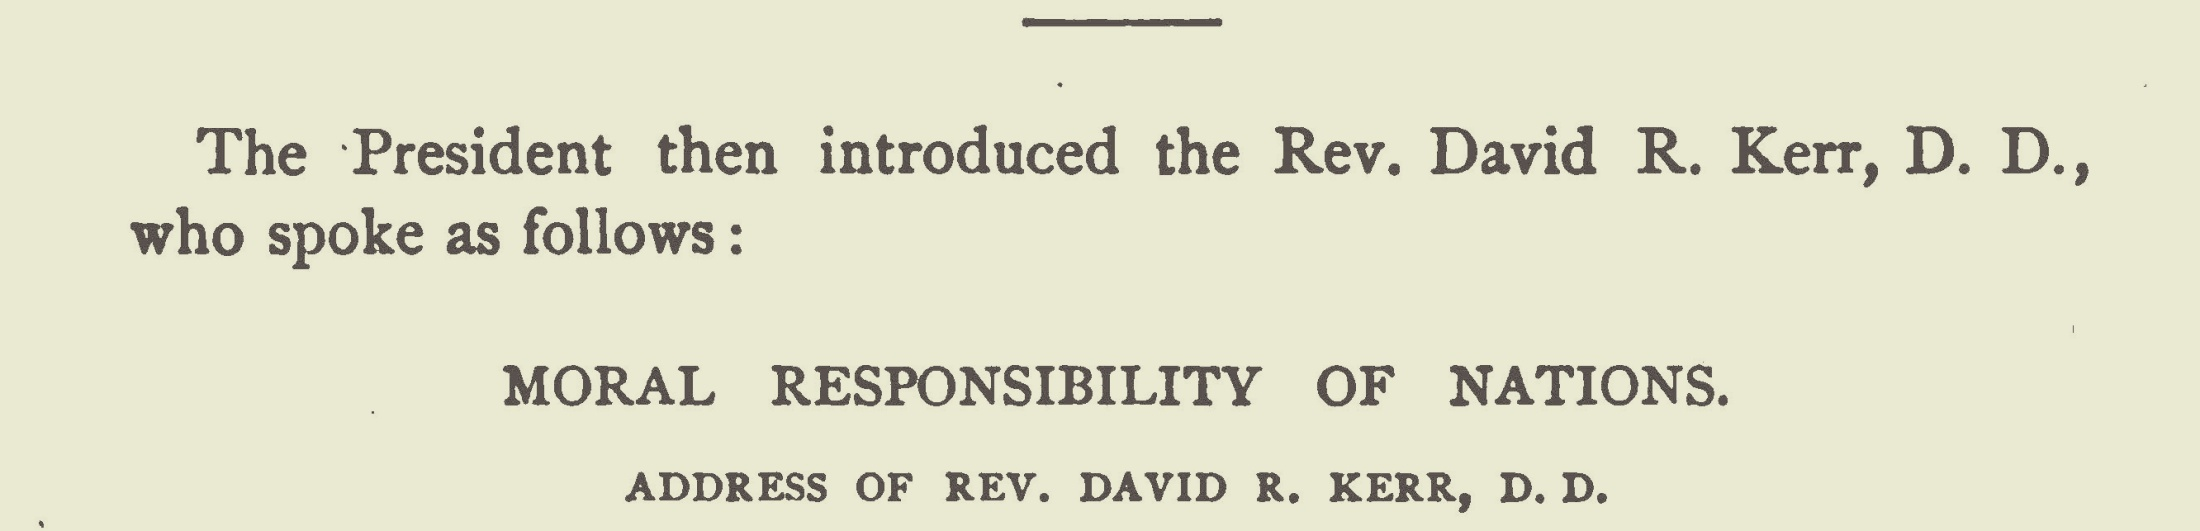 Kerr, David Reynolds, Moral Responsibility of Nations Title Page.jpg